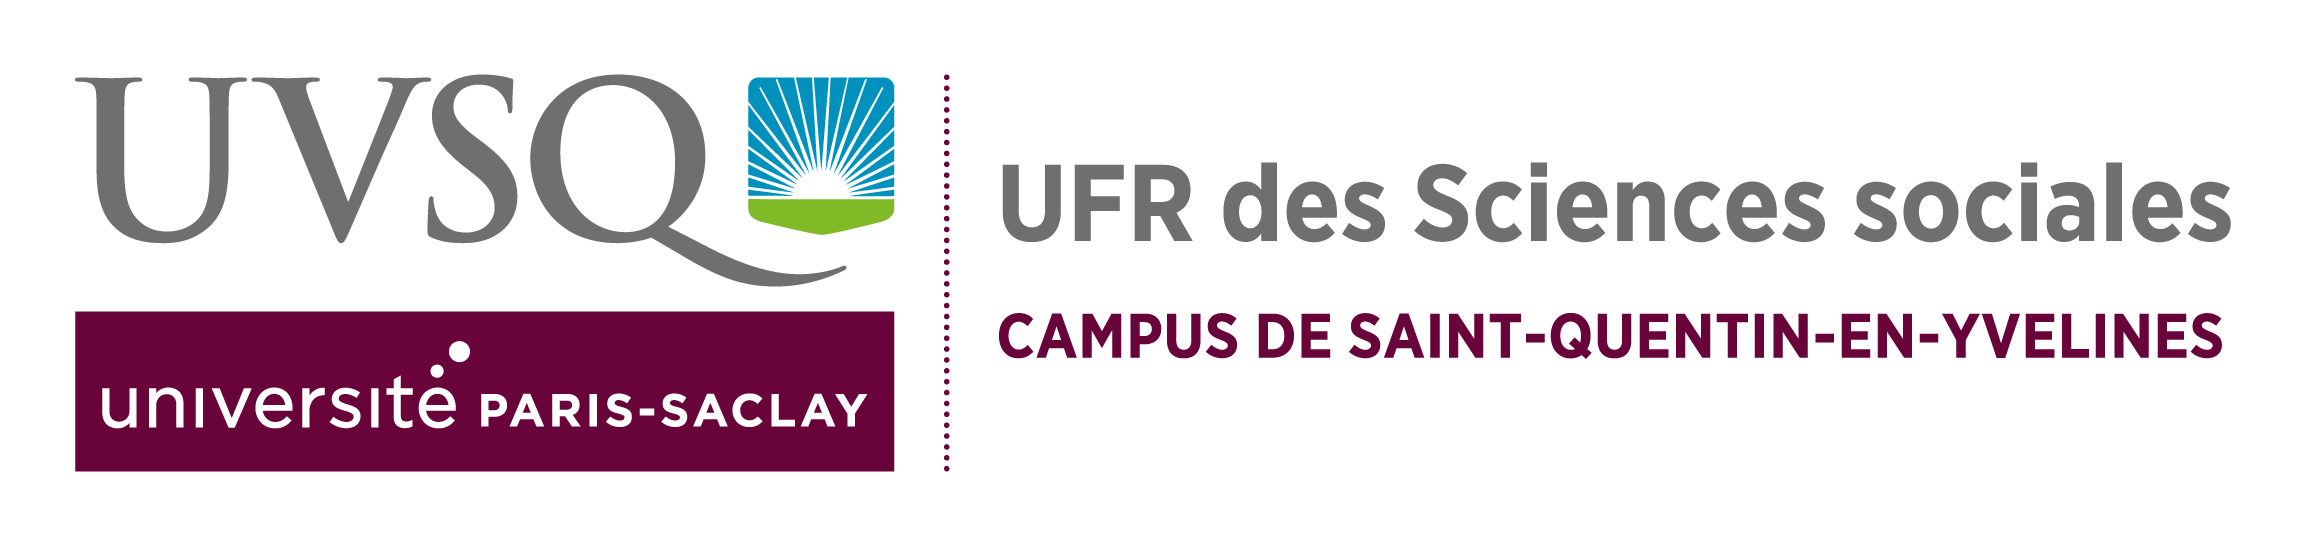 logo-UFR des sciences sociales